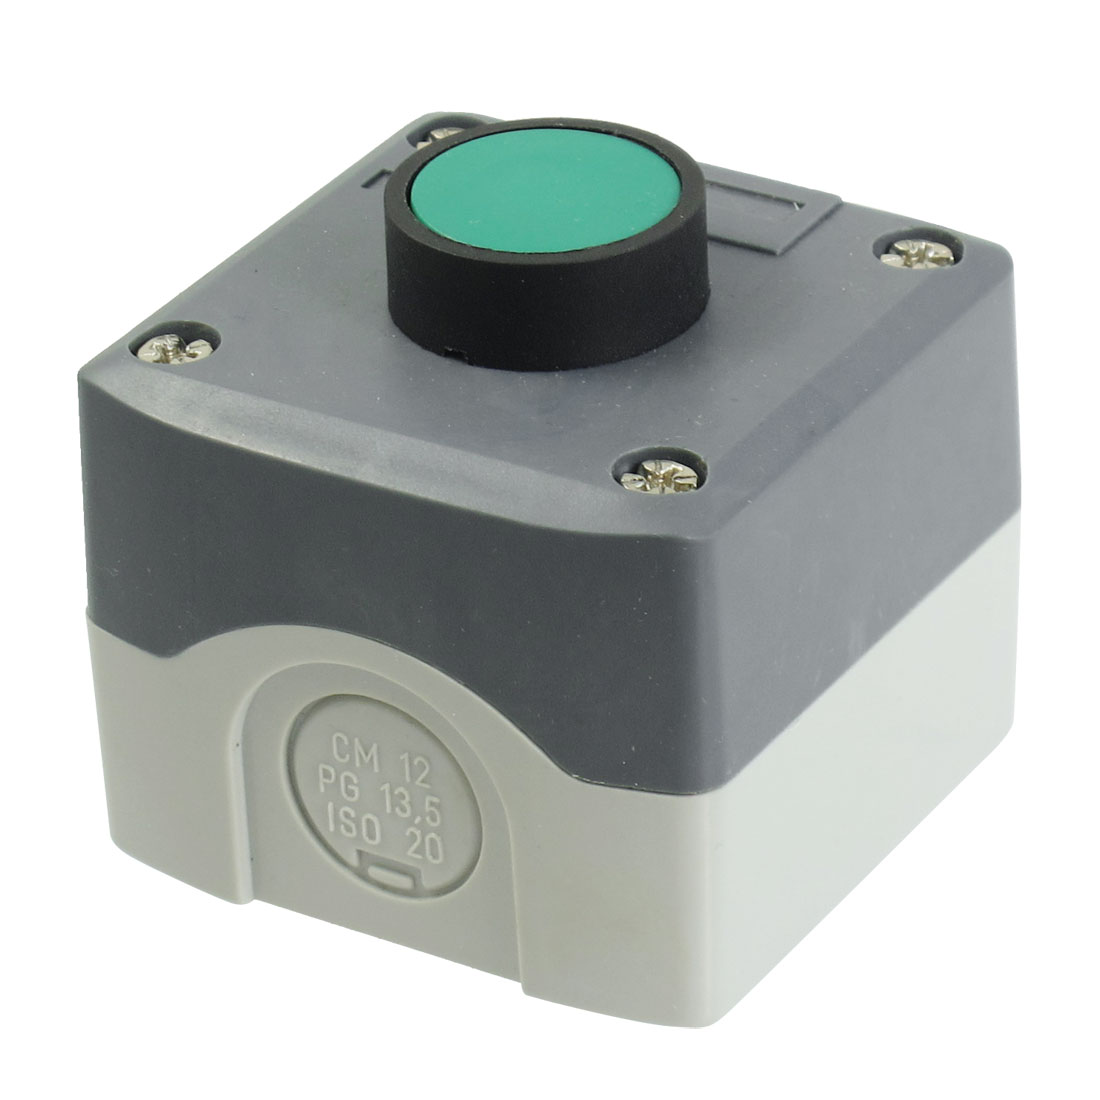 Plastic Shell SPST Momentary Green Flat Push Button Switch 240V 3A